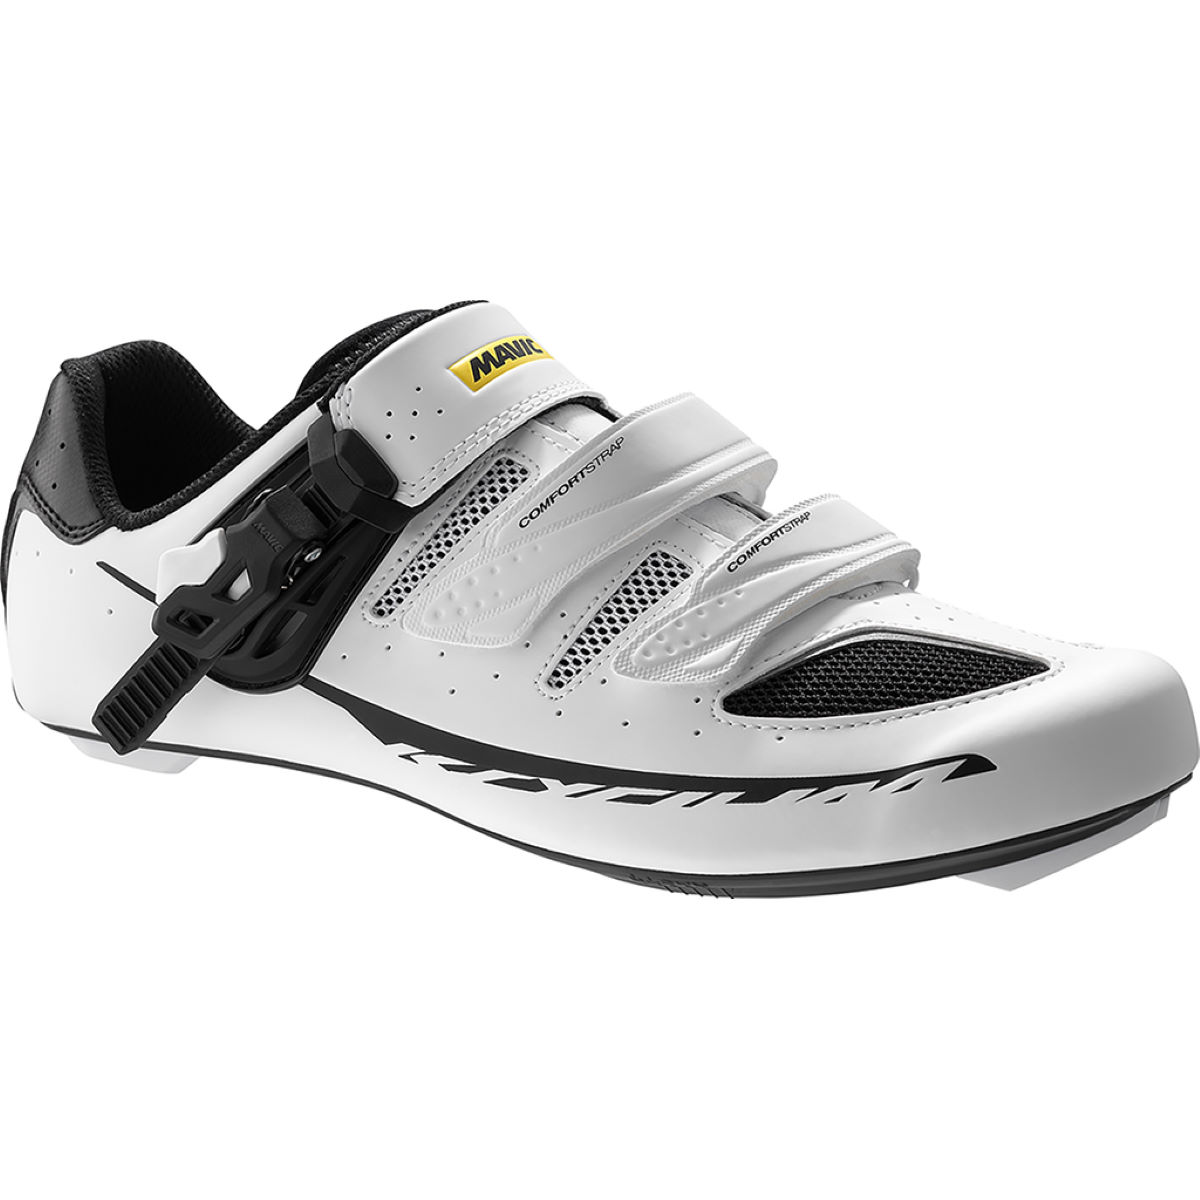 Chaussures Mavic Ksyrium Elite Maxi Fit II - 6 UK Blanc Chaussures de route